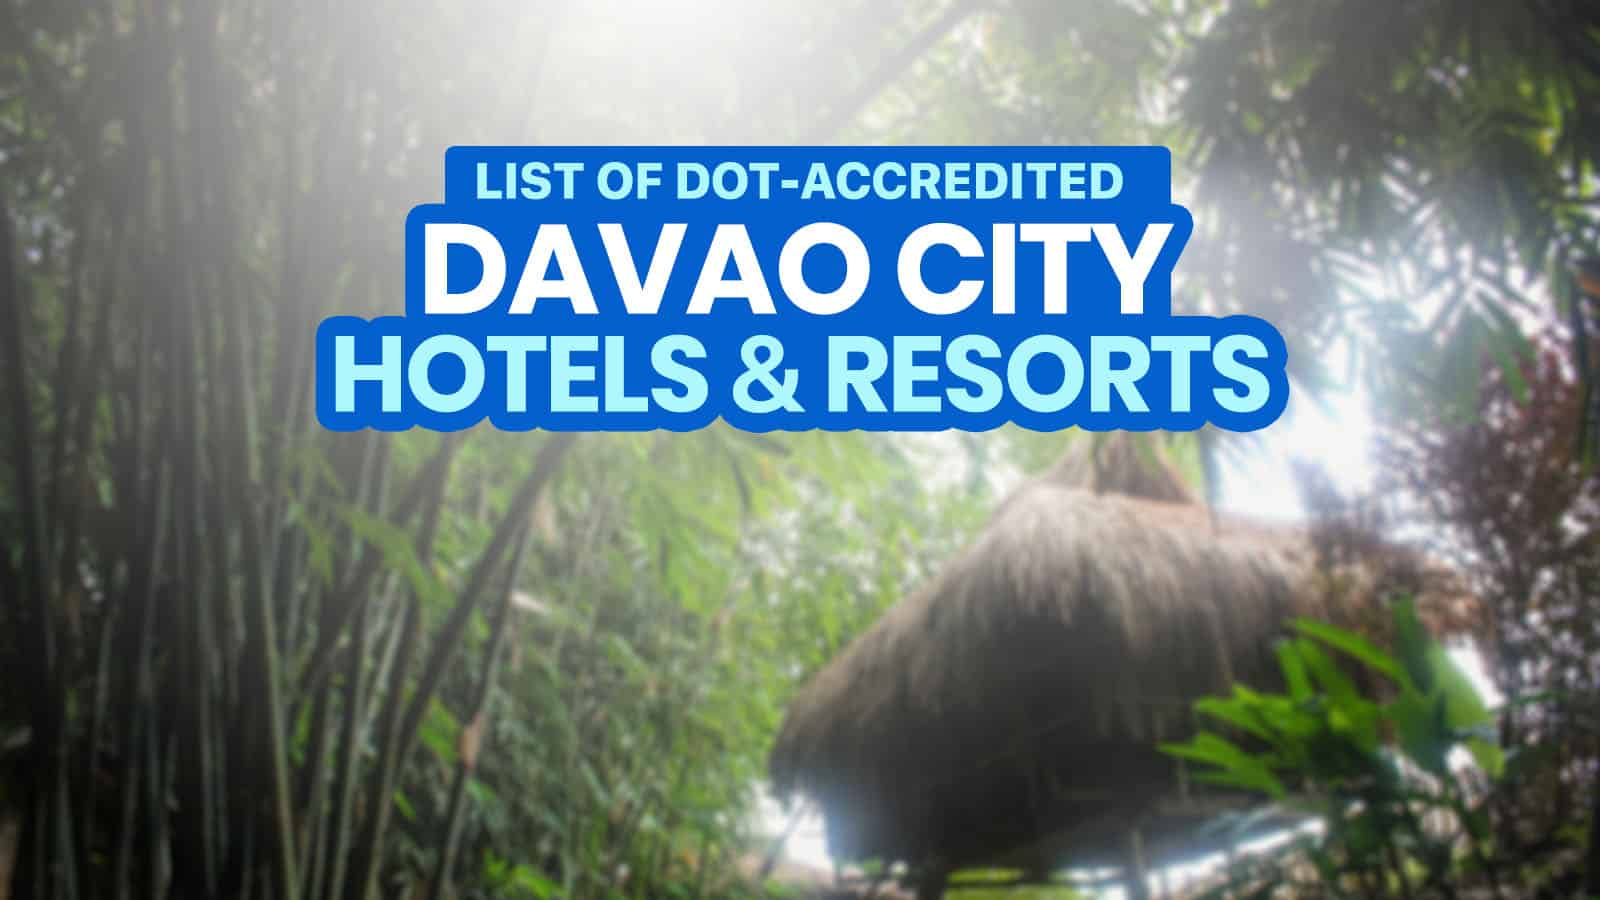 44 DOT-Accredited Hotels & Resorts in DAVAO CITY (Open Now or Soon)